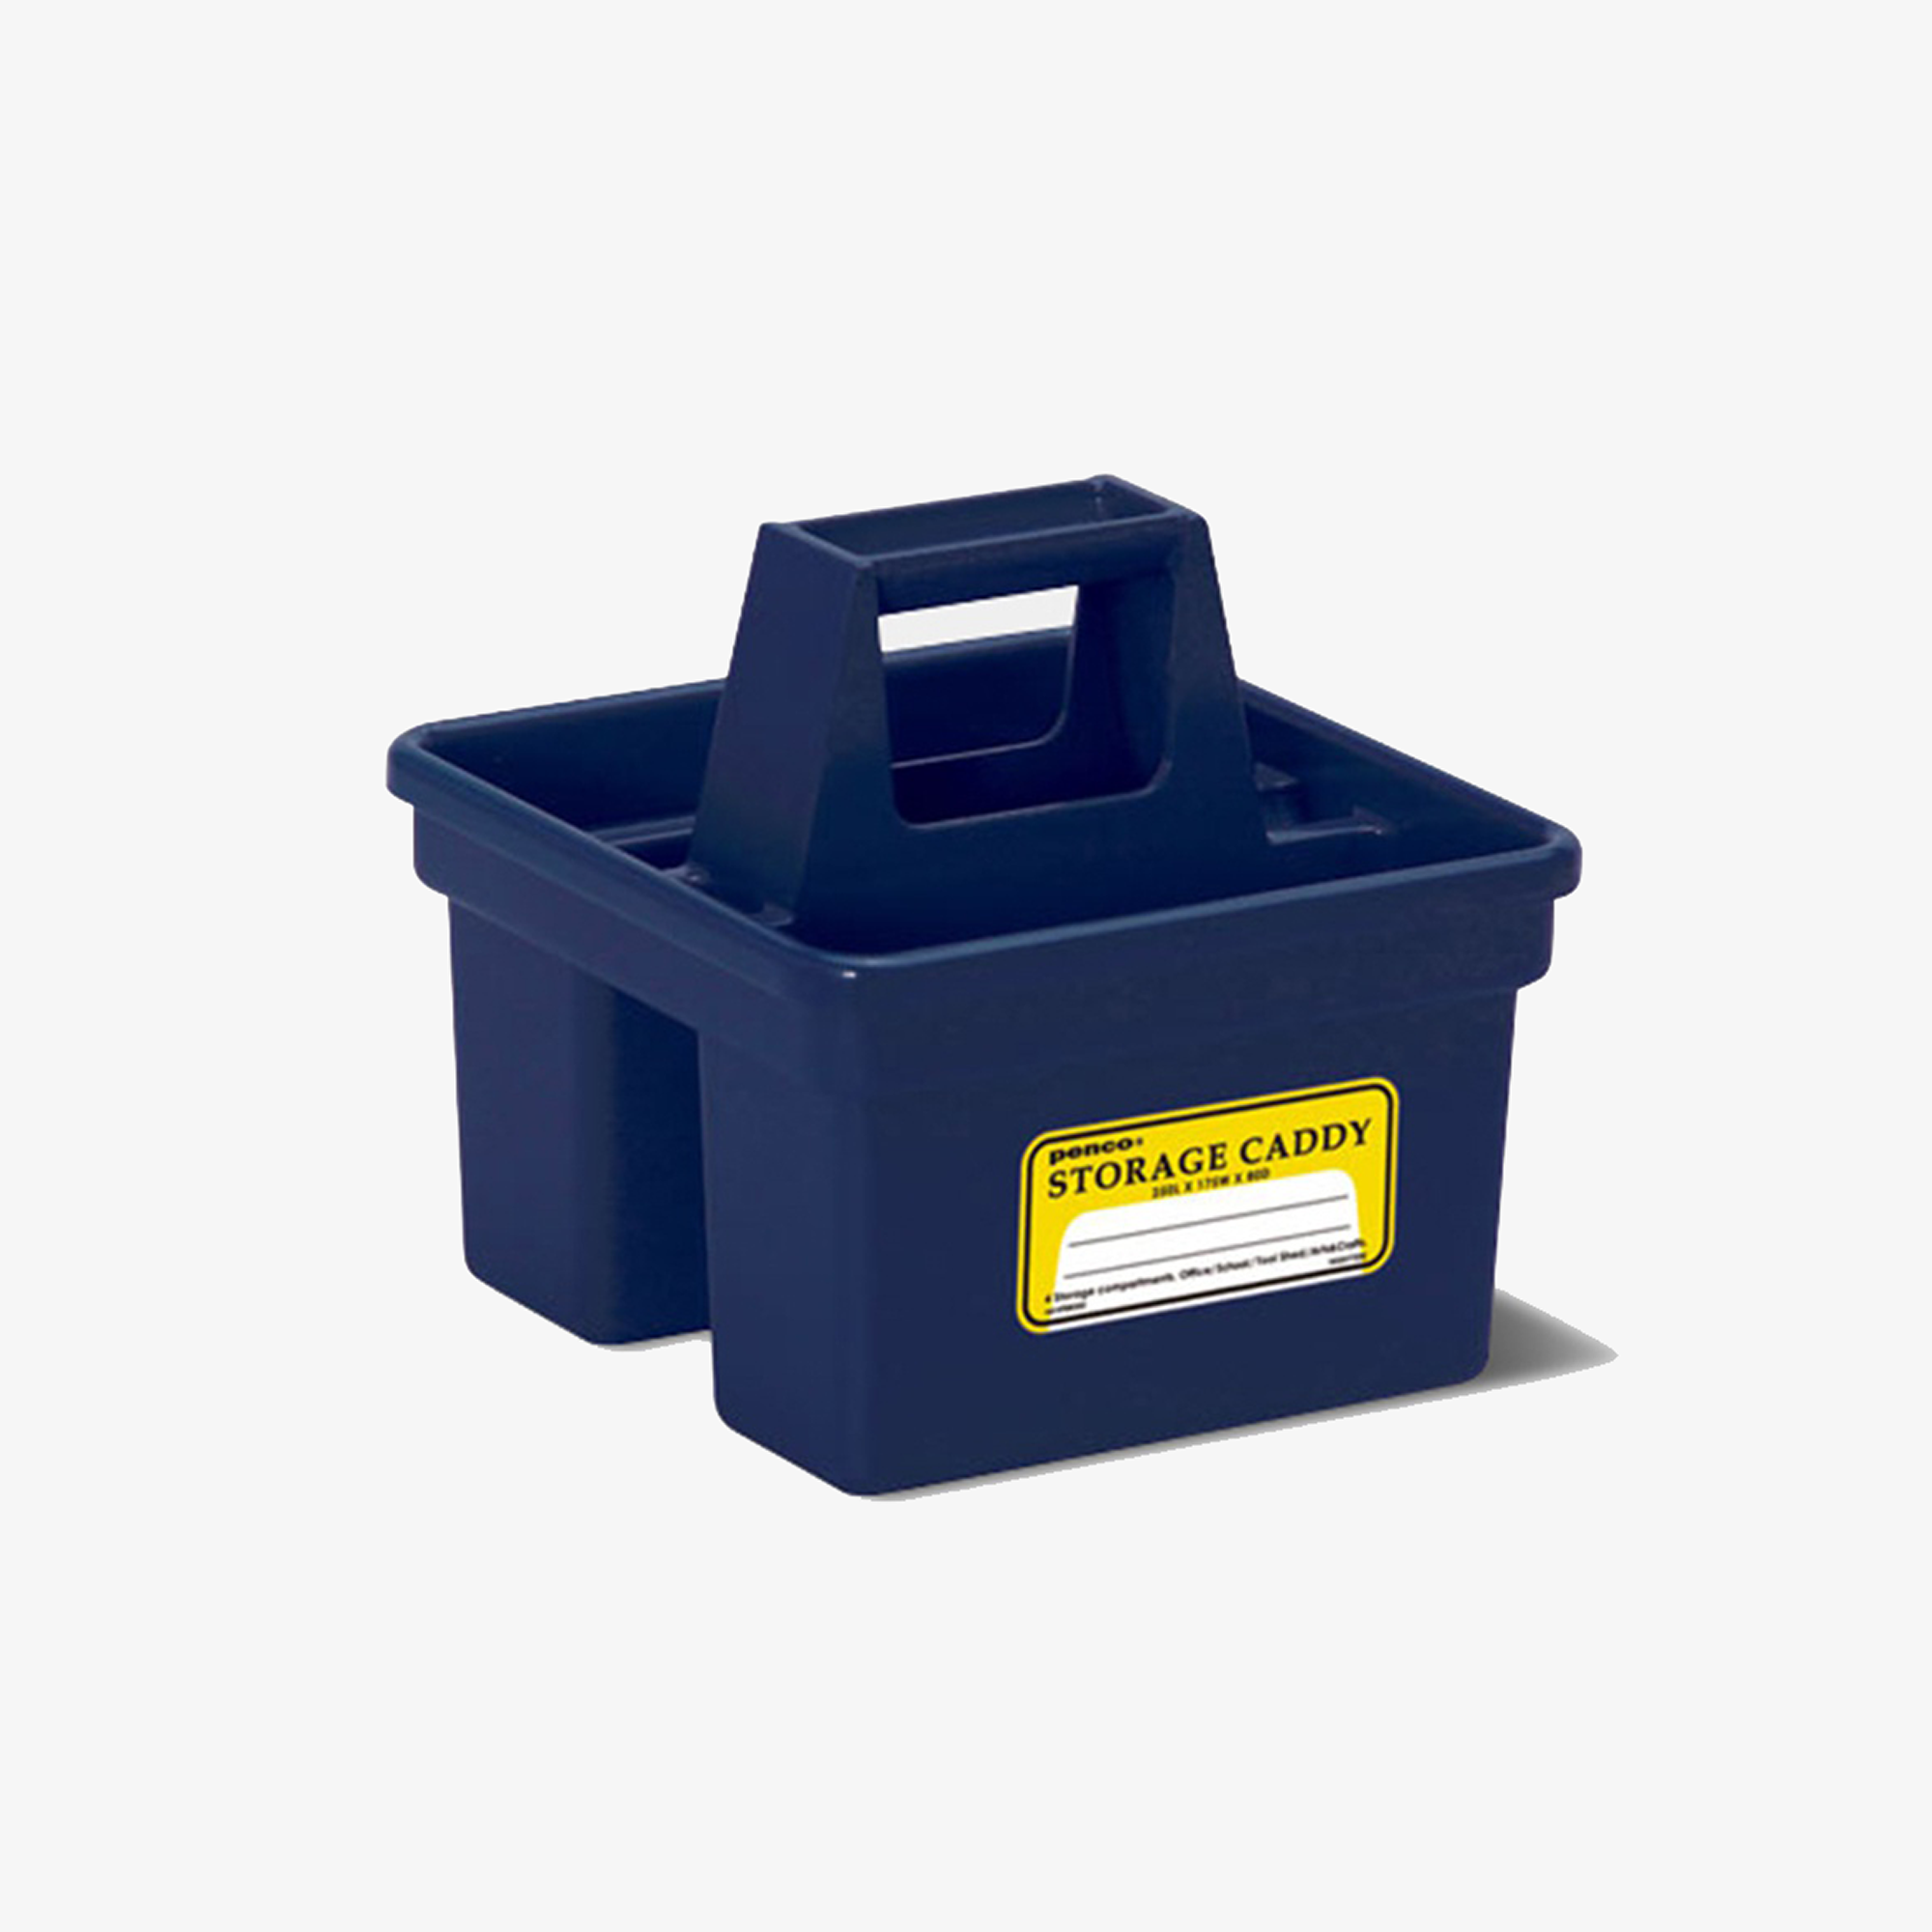 STORAGE CADDY S // NAVY